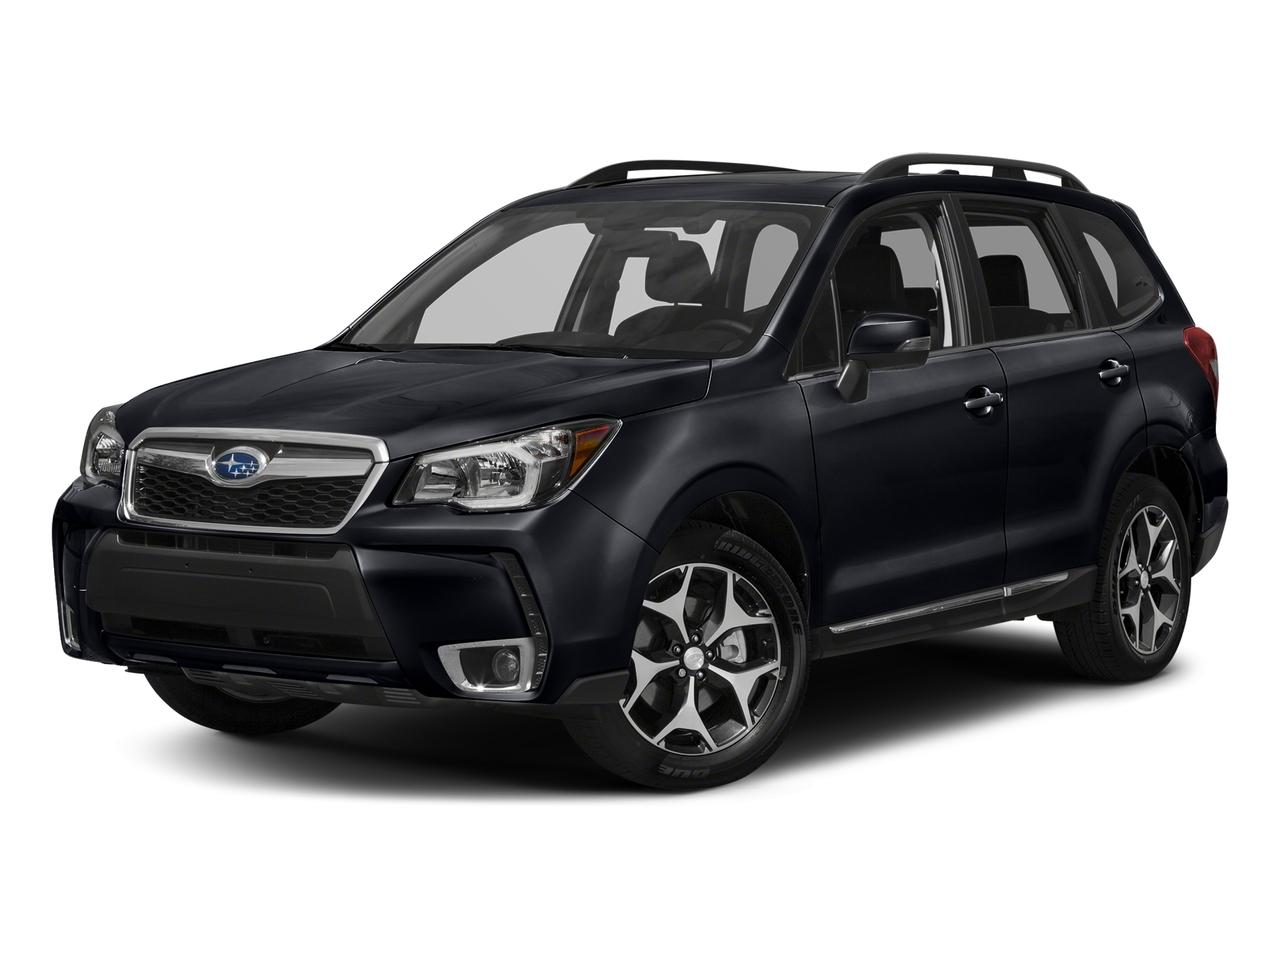 2016 Subaru Forester Vehicle Photo in Portland, OR 97225